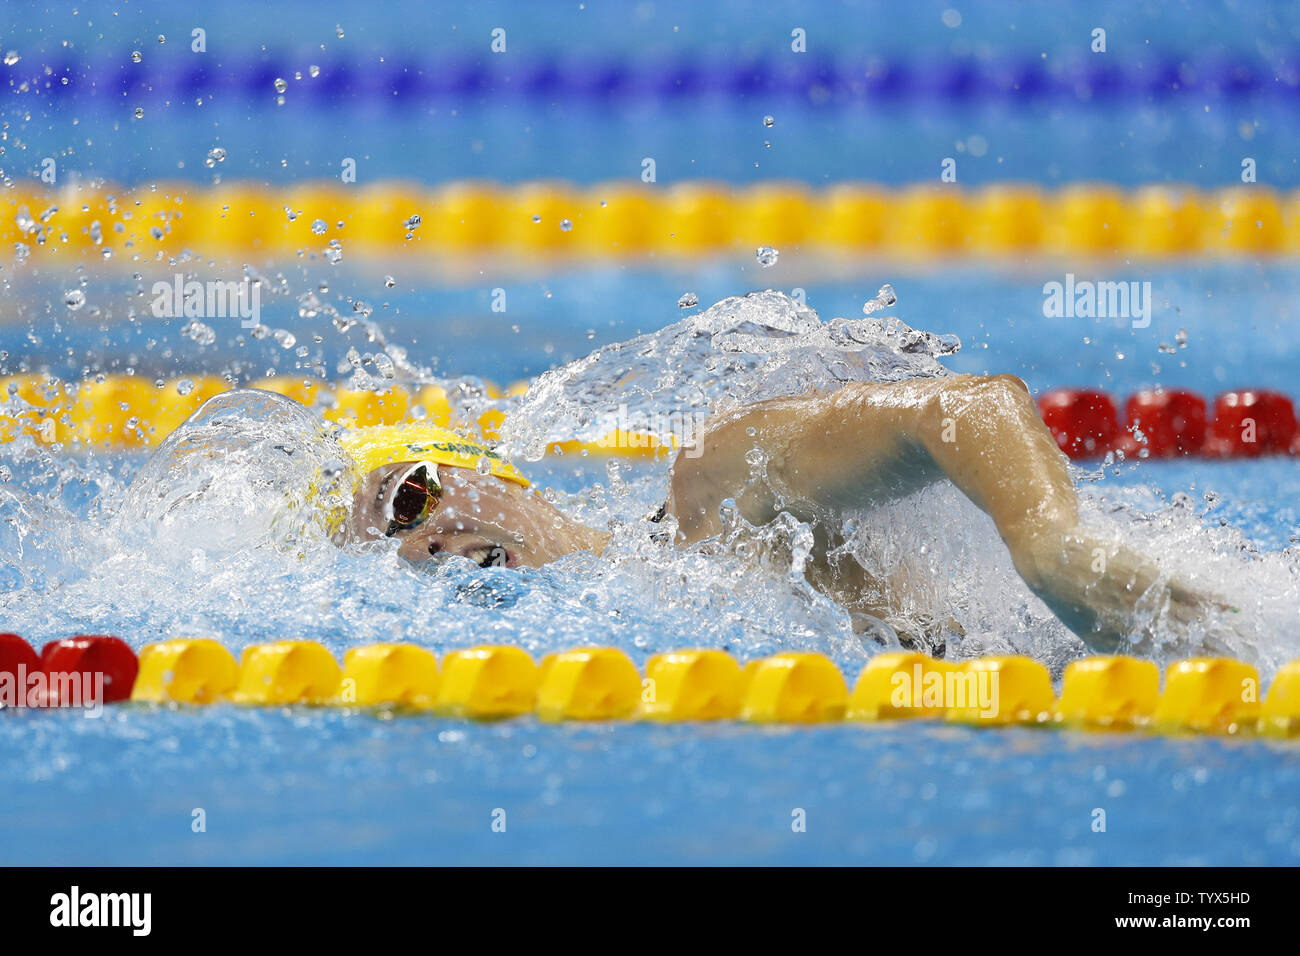 Australia's 4x100M relay team from left  in the Olympic Aquatics Stadium at the 2016 Rio Summer Olympics in Rio de Janeiro, Brazil, on August 5, 2016. Horton won gold with a time of 3:41.55.  Photo by Matthew Healey/UPI..Bronte Campbell (C) Emma McKeen (R) Brittaney Elmsley pool Stock Photo